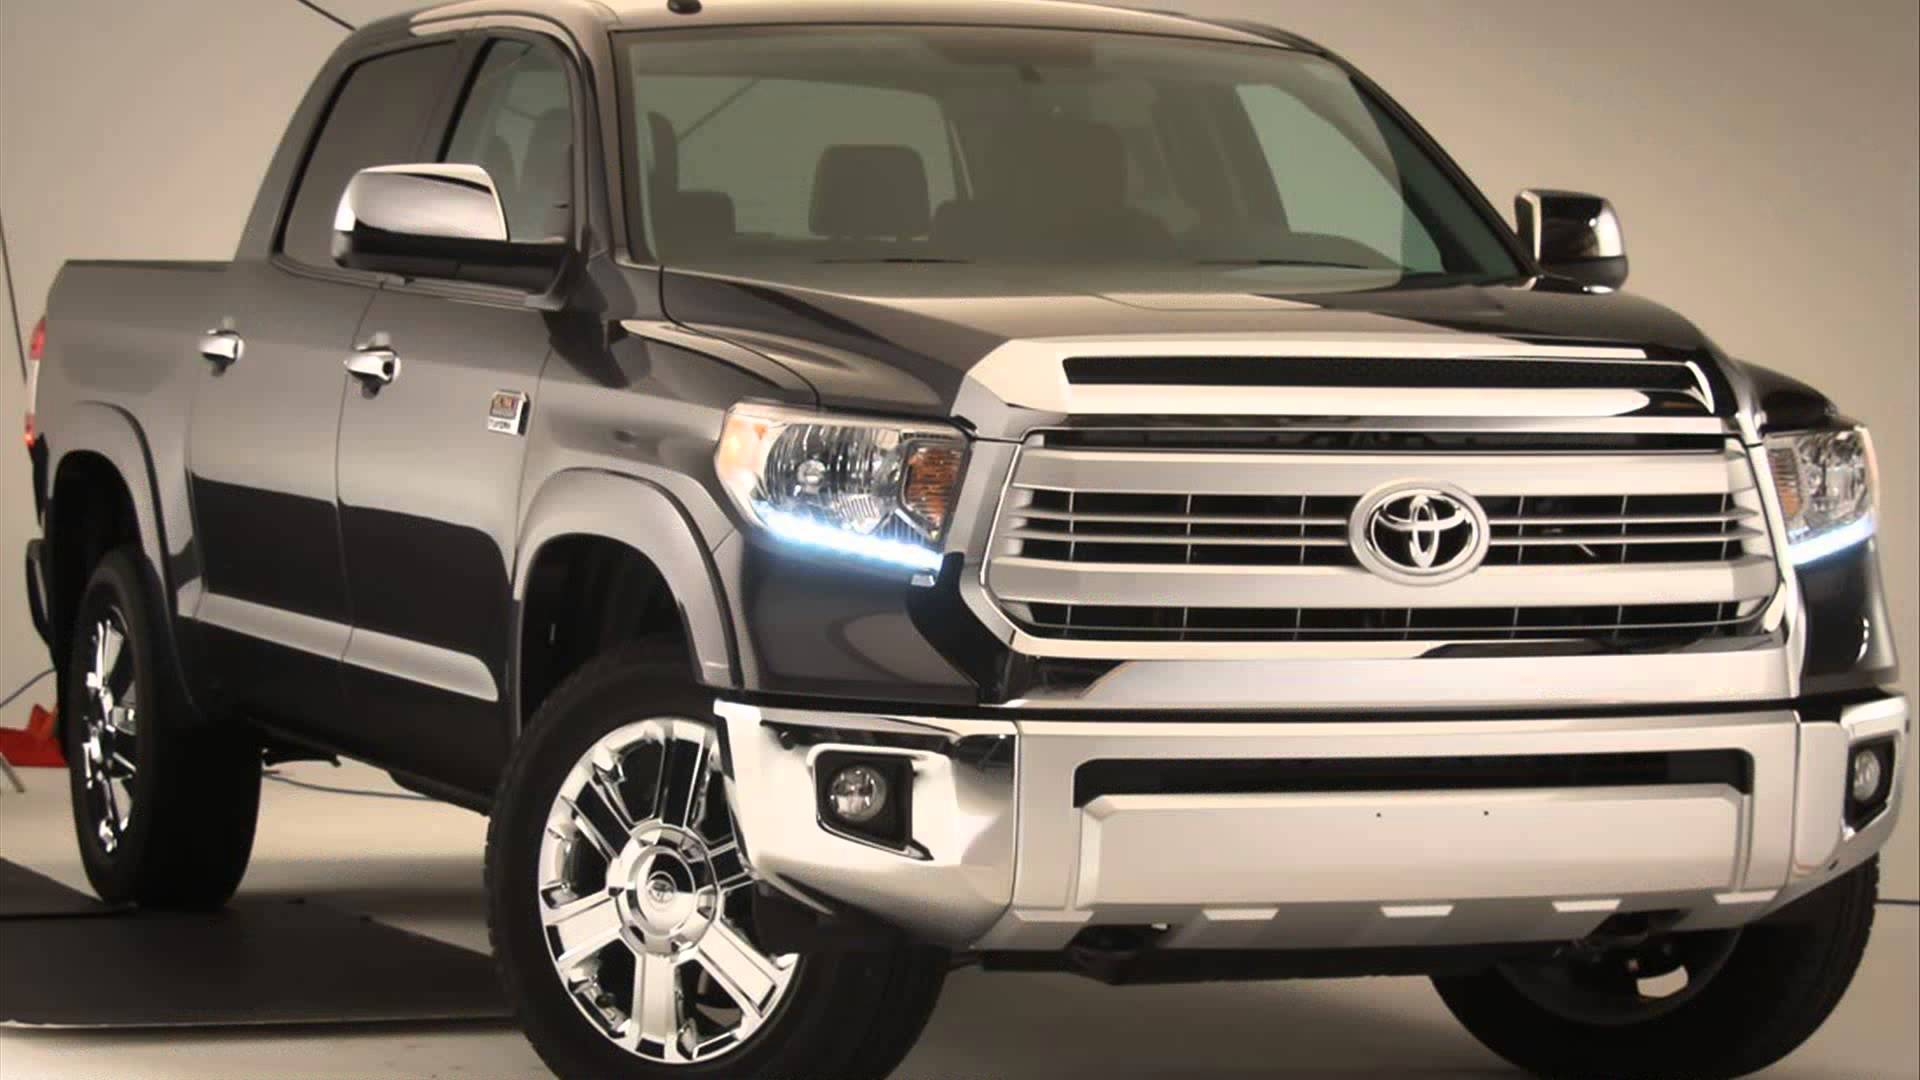 Toyota Tundra Wallpapers 10